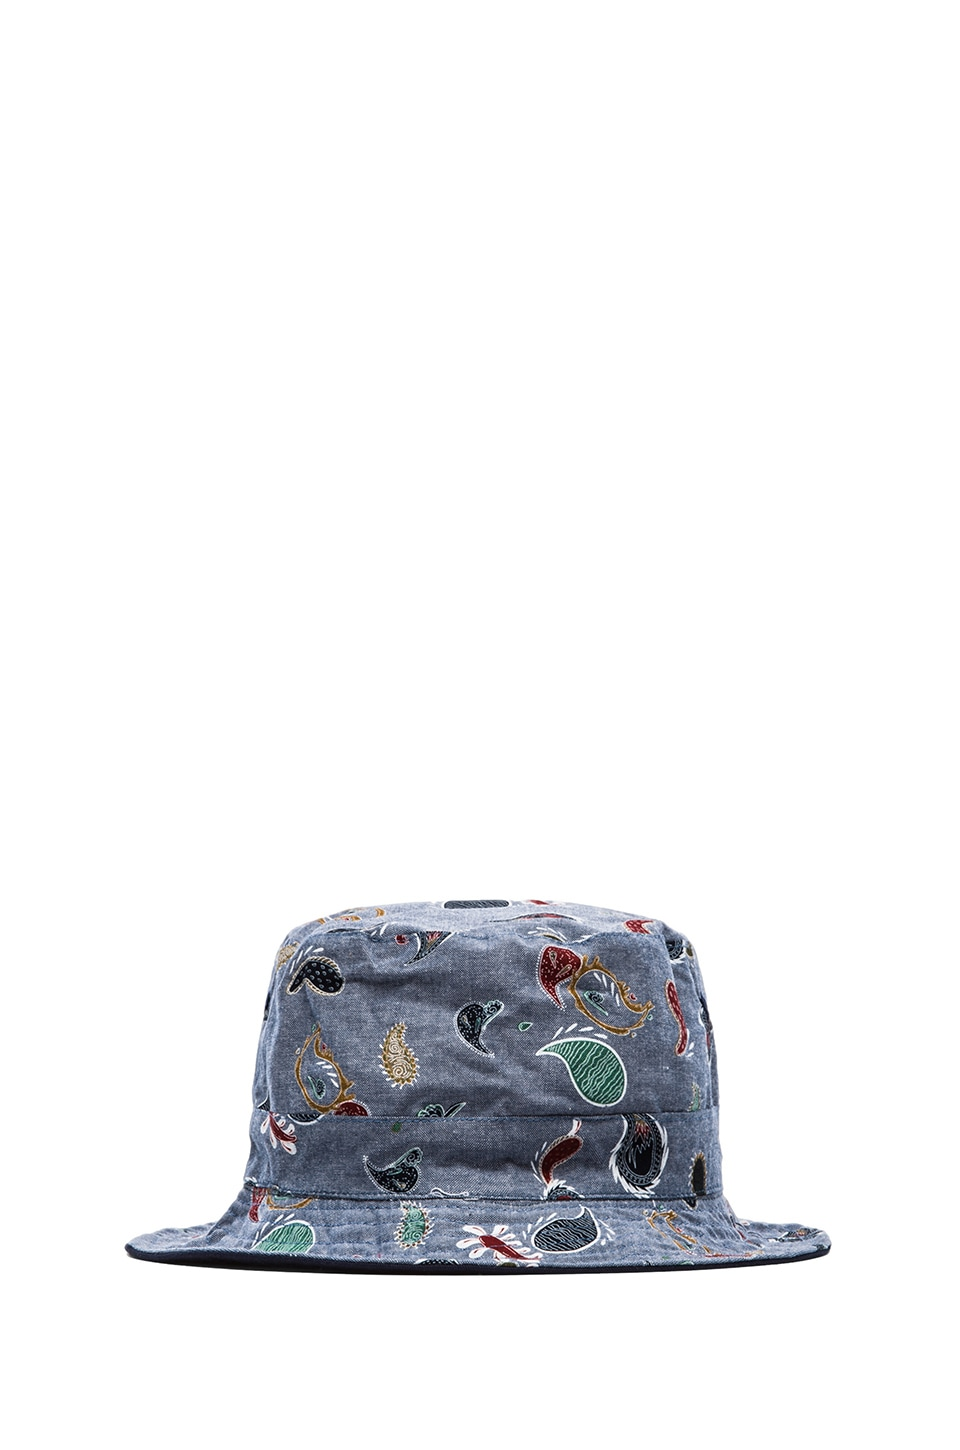 Staple Thorpe Bucket Cap in Indigo